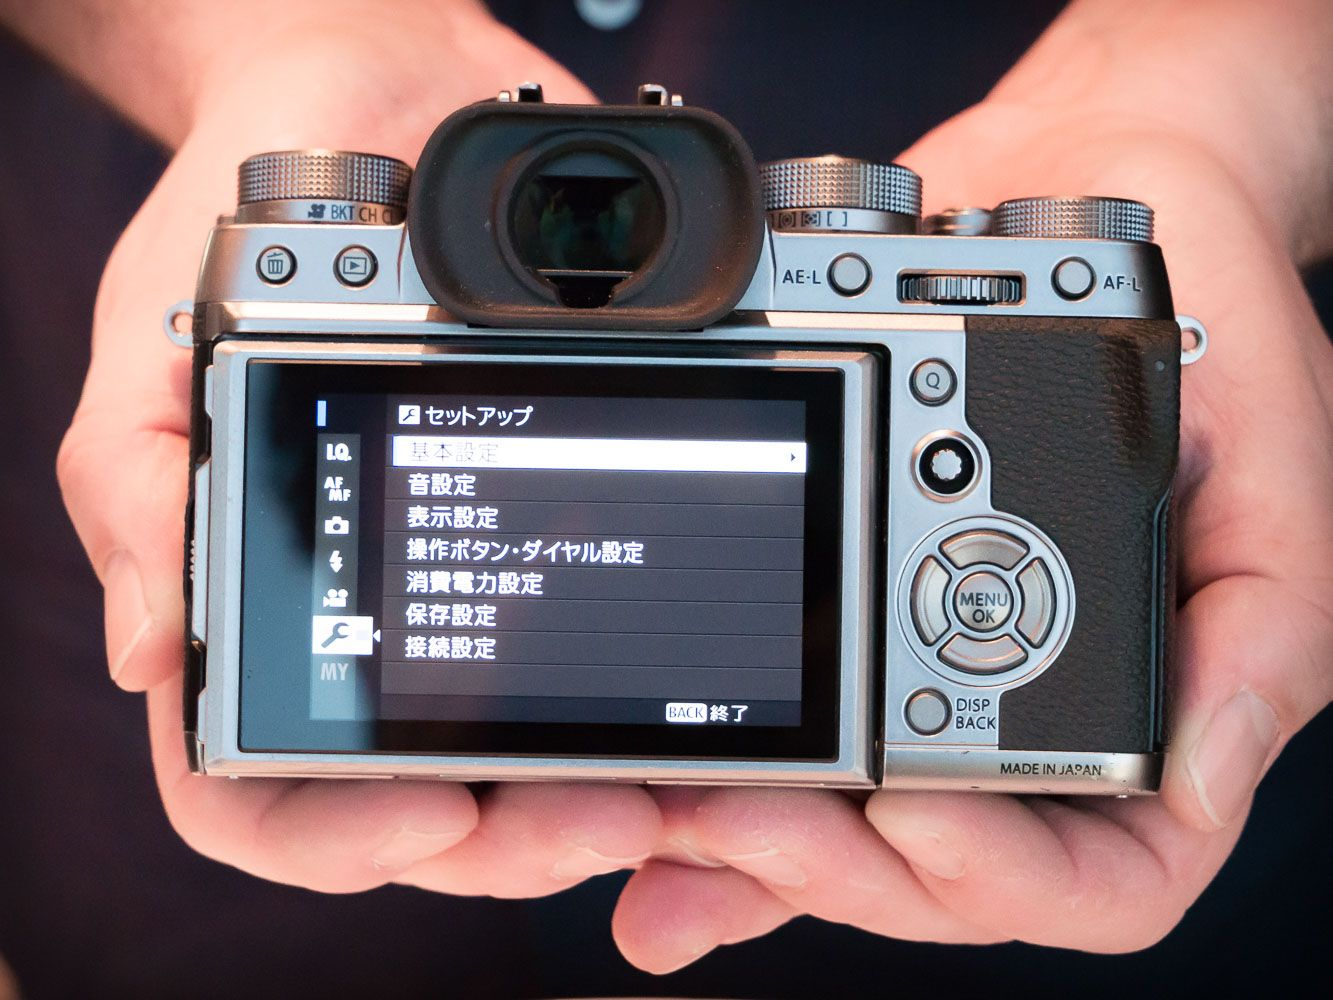 Pthe Graphite Silver X T2 Will Ship Later This Month For 1799 Fujifilm Xt2 Body Only Thats 200 More Than The Standard P